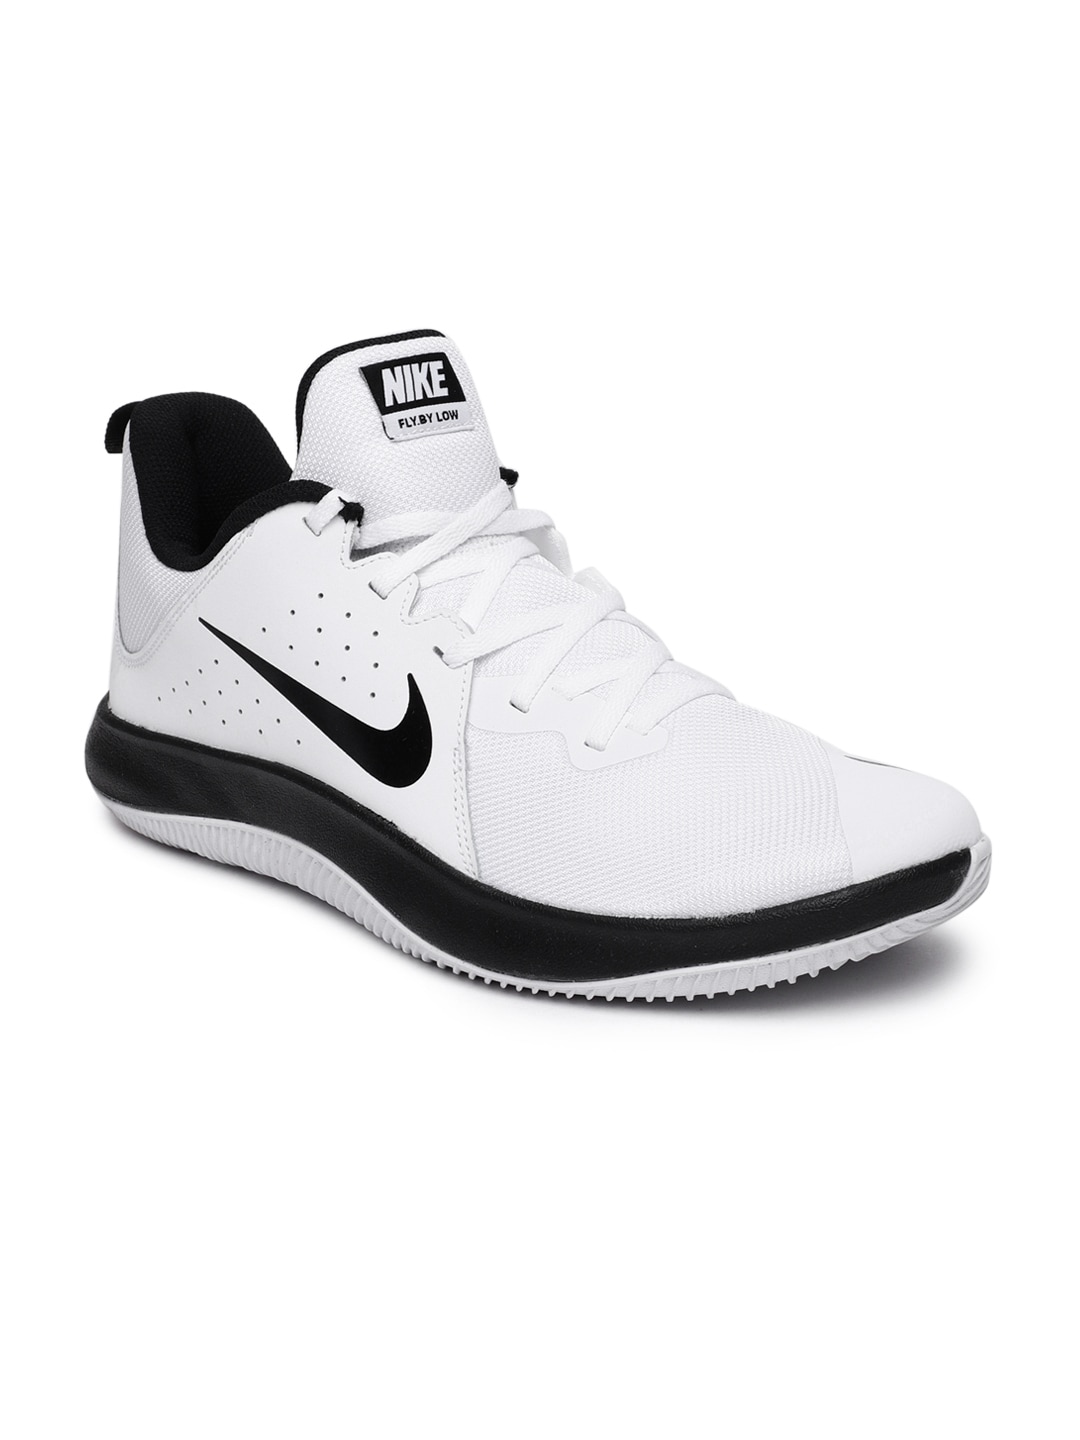 62af4282d416 Nike Shoes - Buy Nike Shoes for Men